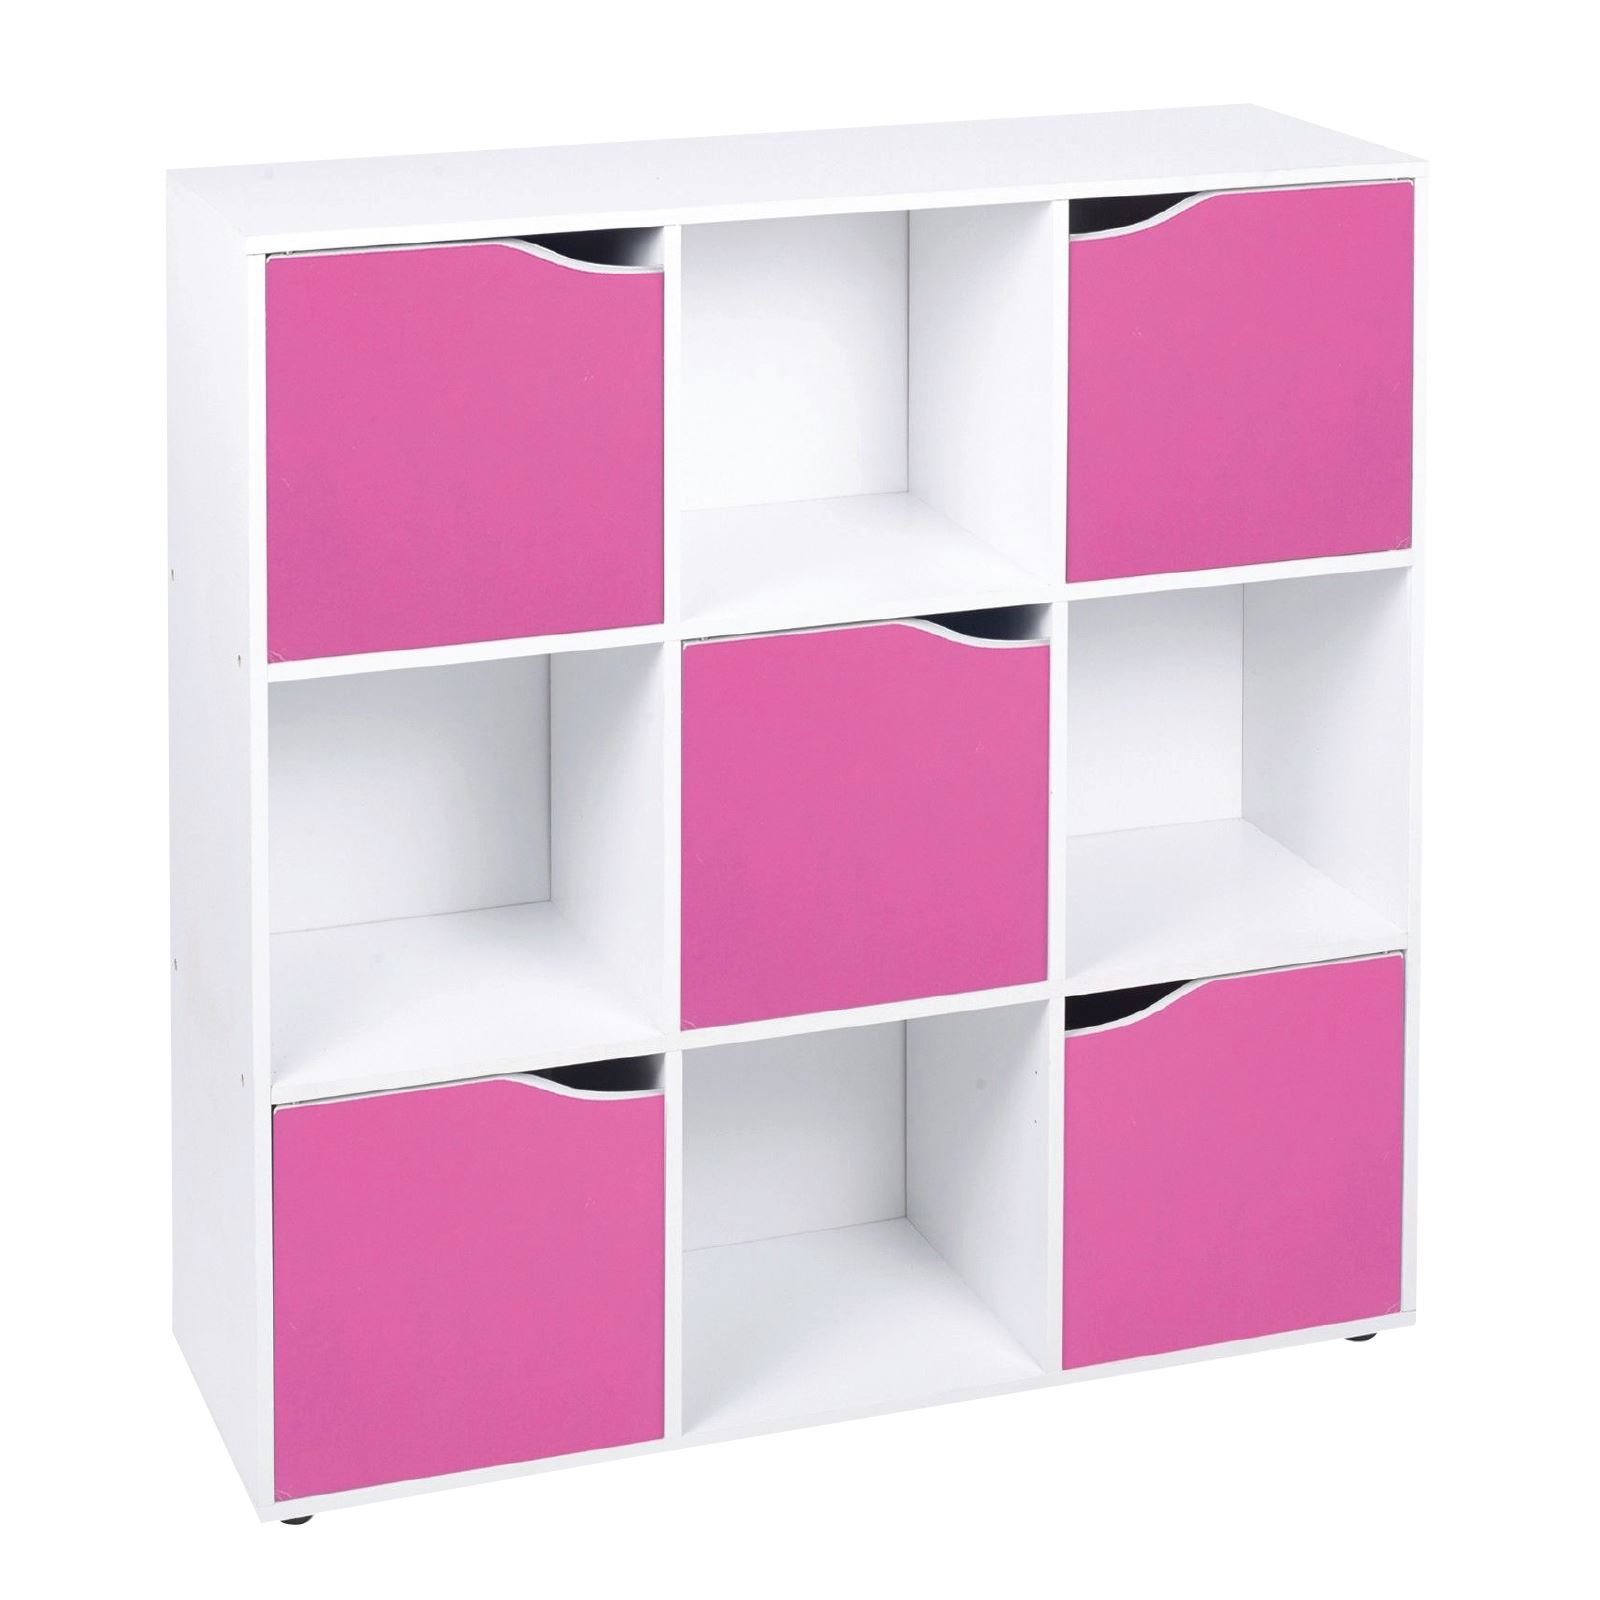 Groovy Share Cube Doors Storage On Facebook Wooden Cube Doors Storage Unit Shopmonk 9 Cube Storage Unit 9 Cube Storage Unit Amazon houzz 01 9 Cube Storage Unit